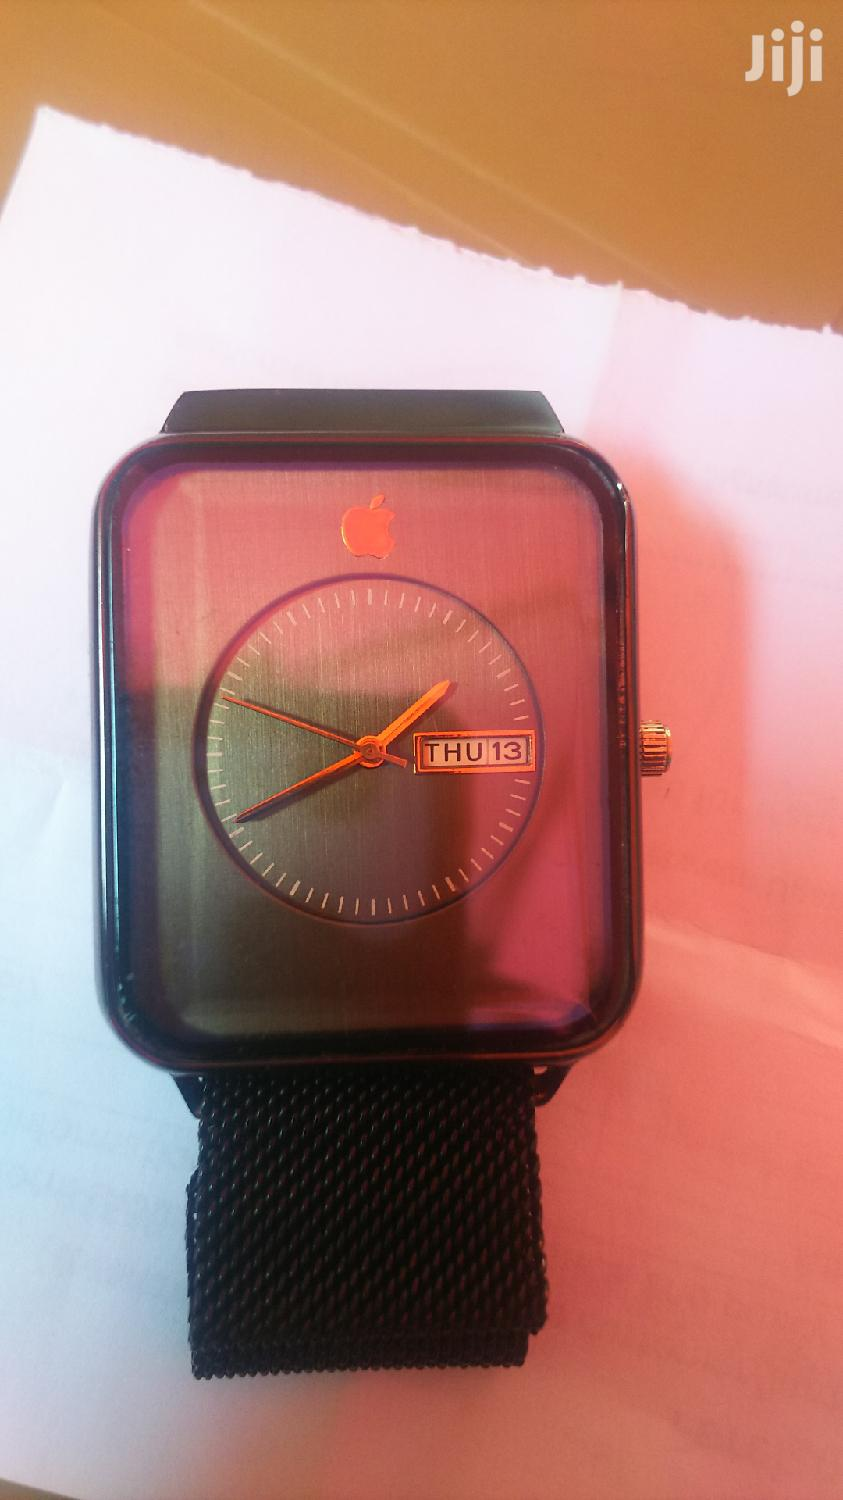 Unisex Apple Watch With LED Display | Smart Watches & Trackers for sale in Kampala, Central Region, Uganda